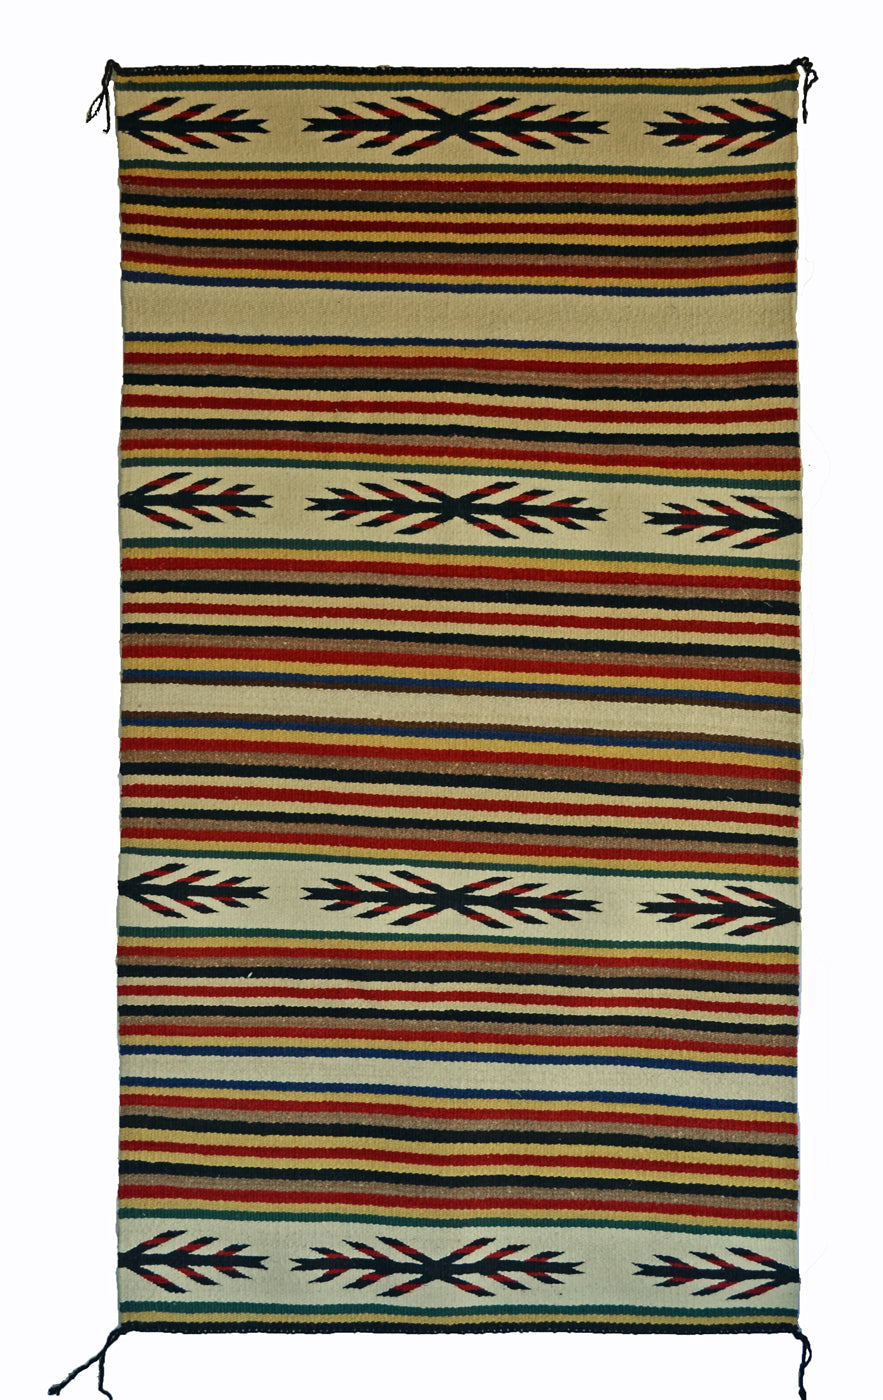 Navajo Saddle Blanket - Double : Nizhoni Ranch Gallery : SG 37 - Getzwiller's Nizhoni Ranch Gallery